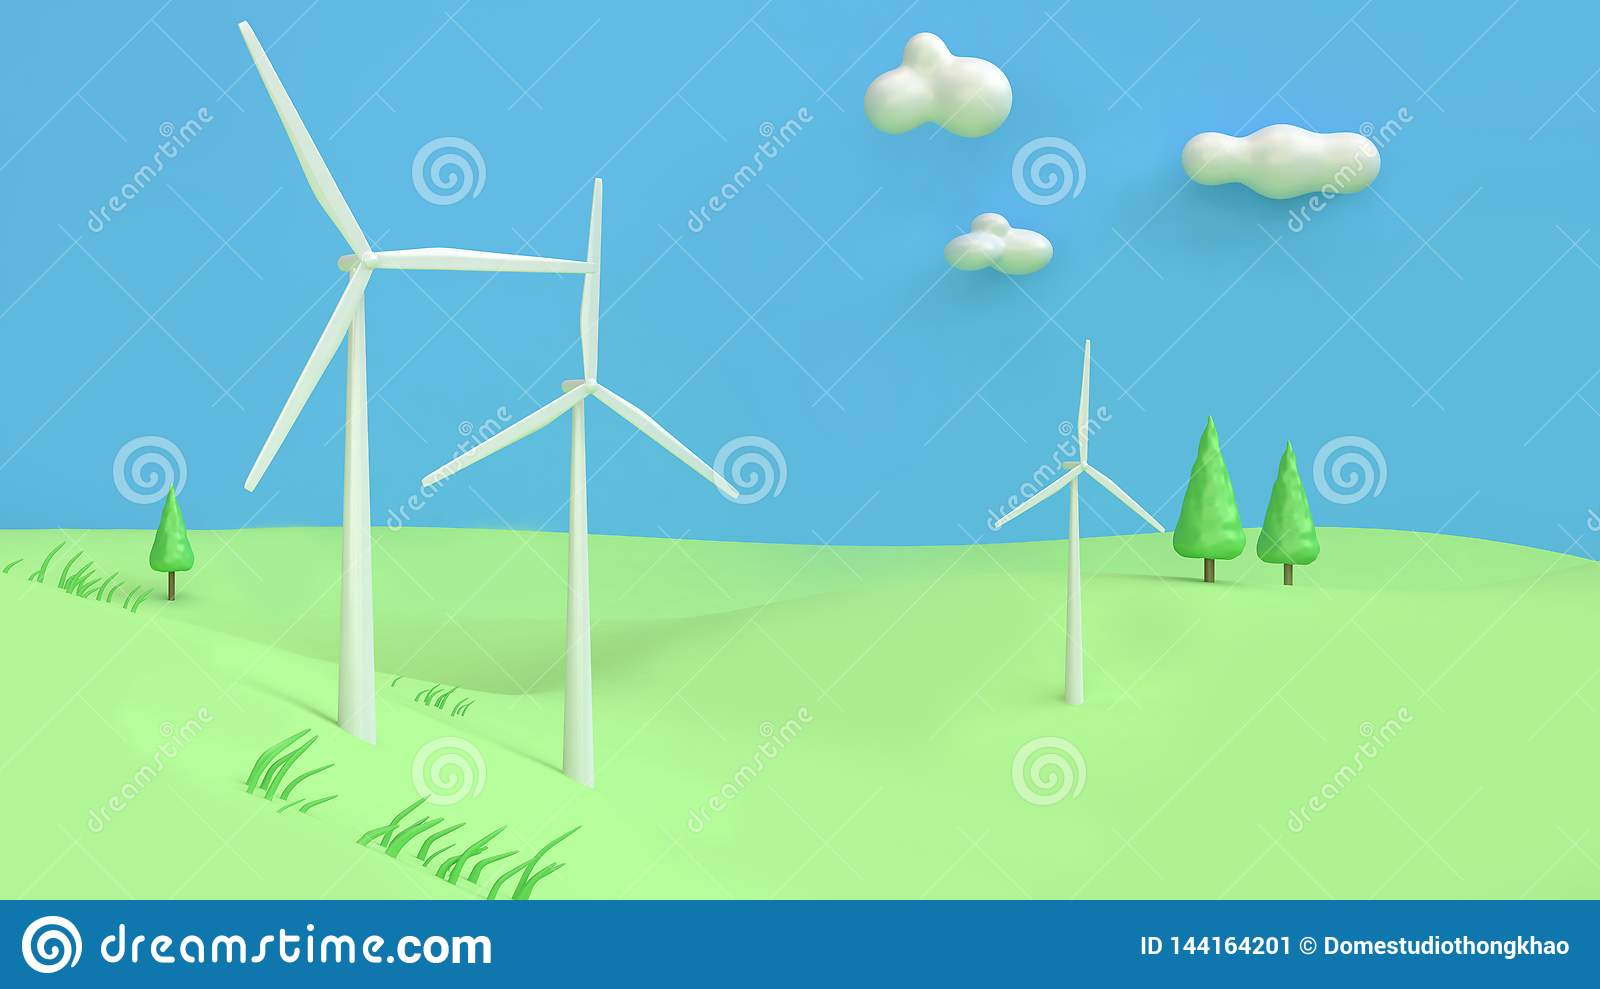 Wind turbine green hill blue sky cartoon style abstract 3d render,renewable energy environment save earth concept